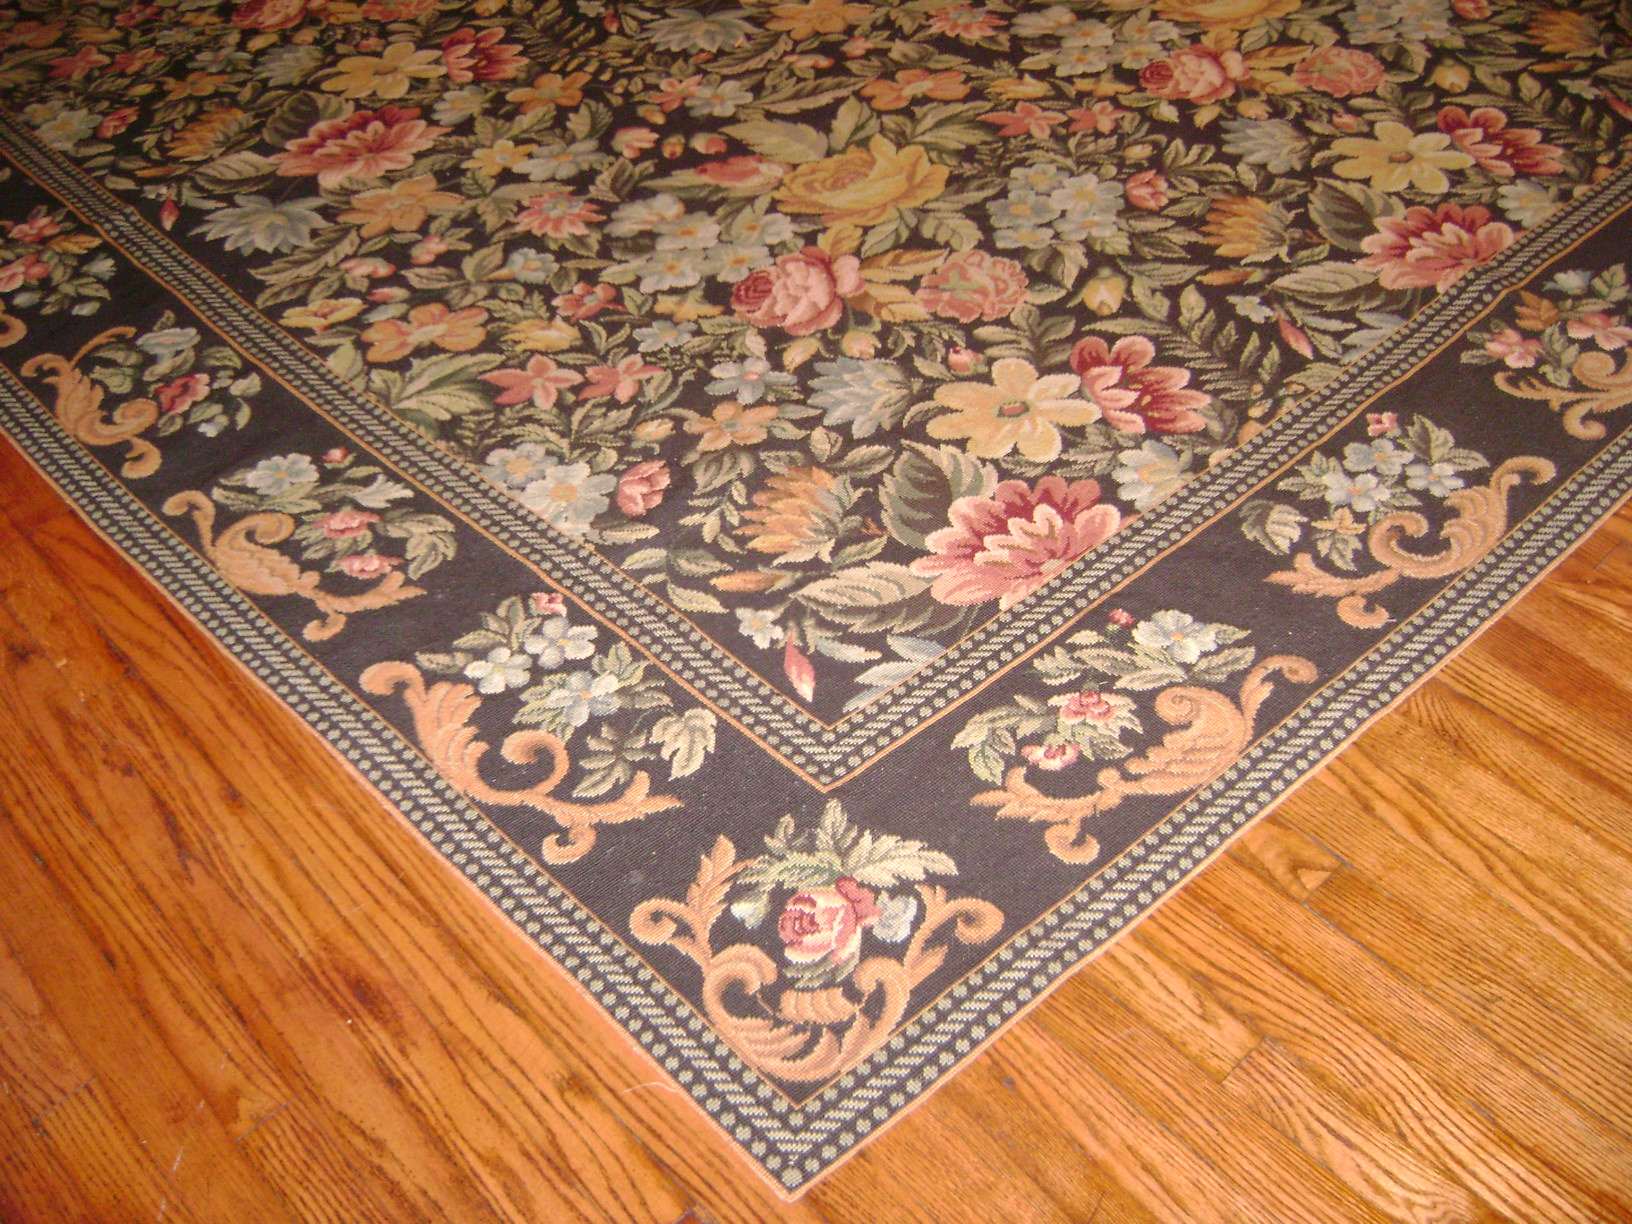 Cynthia's floral  needlepoint rug